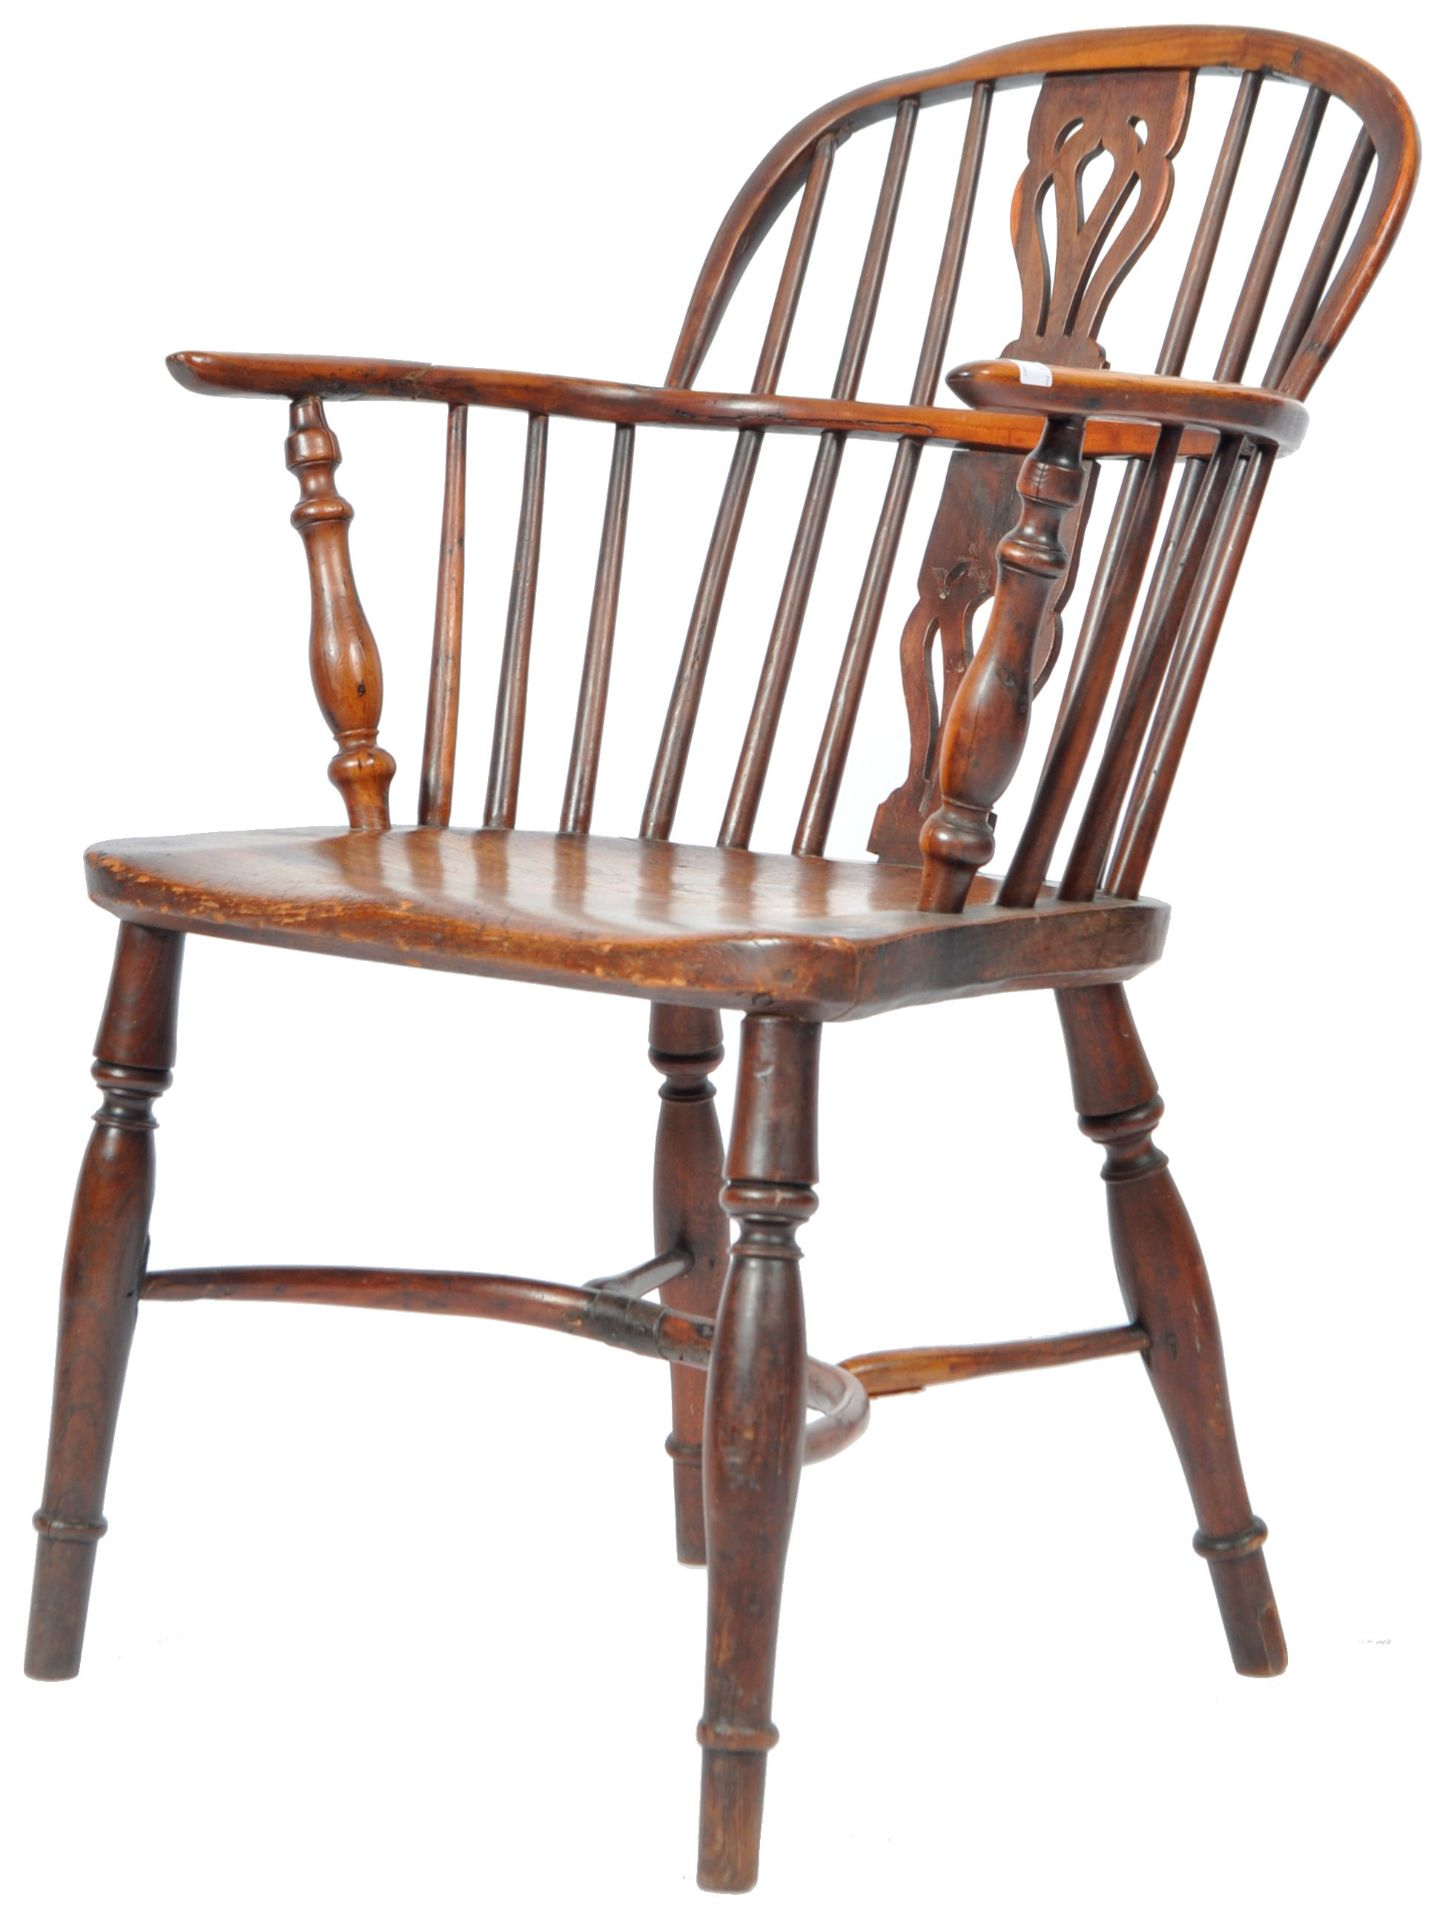 ANTIQUE GEORGIAN YEW AND ELM CRINOLINE WINDSOR ARMCHAIR